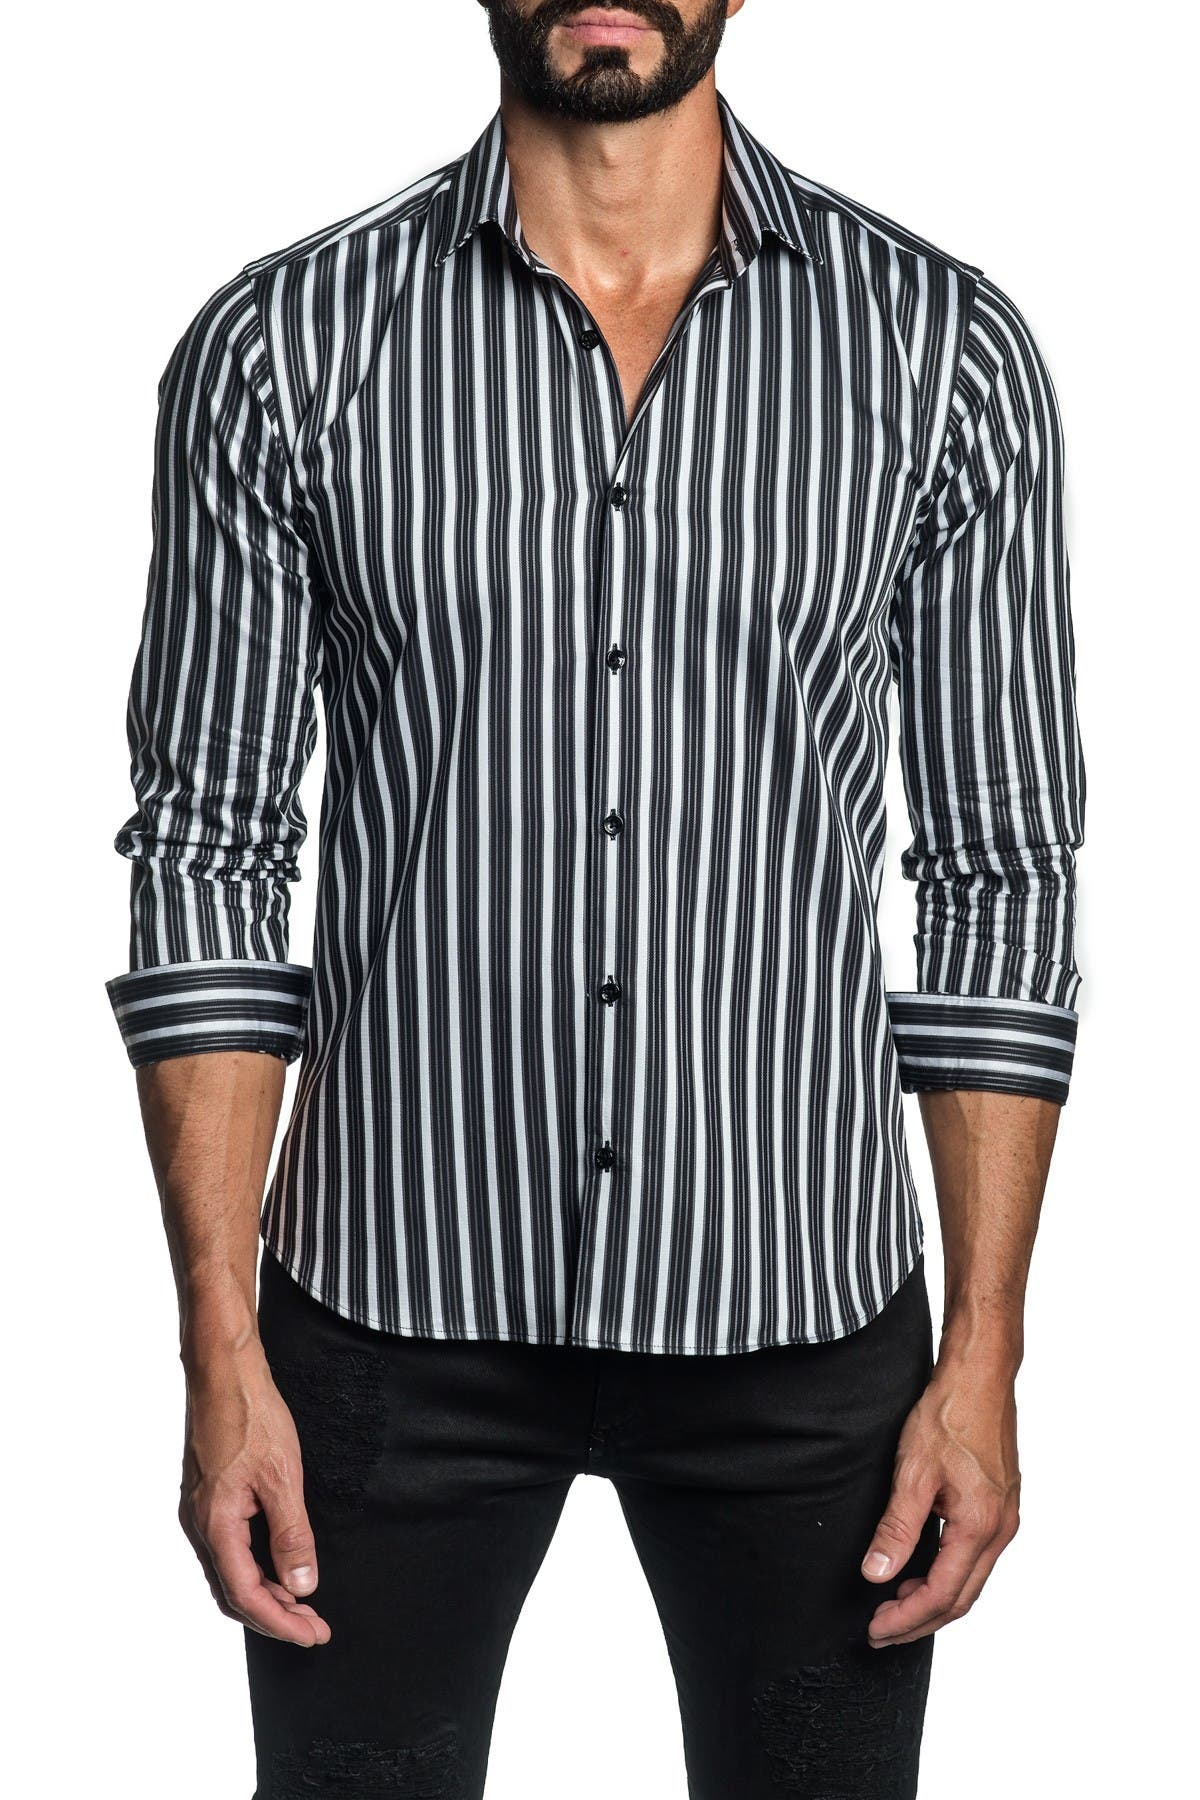 Jared Lang Cottons TRIM FIT WHITE BLACK STRIPE DRESS SHIRT